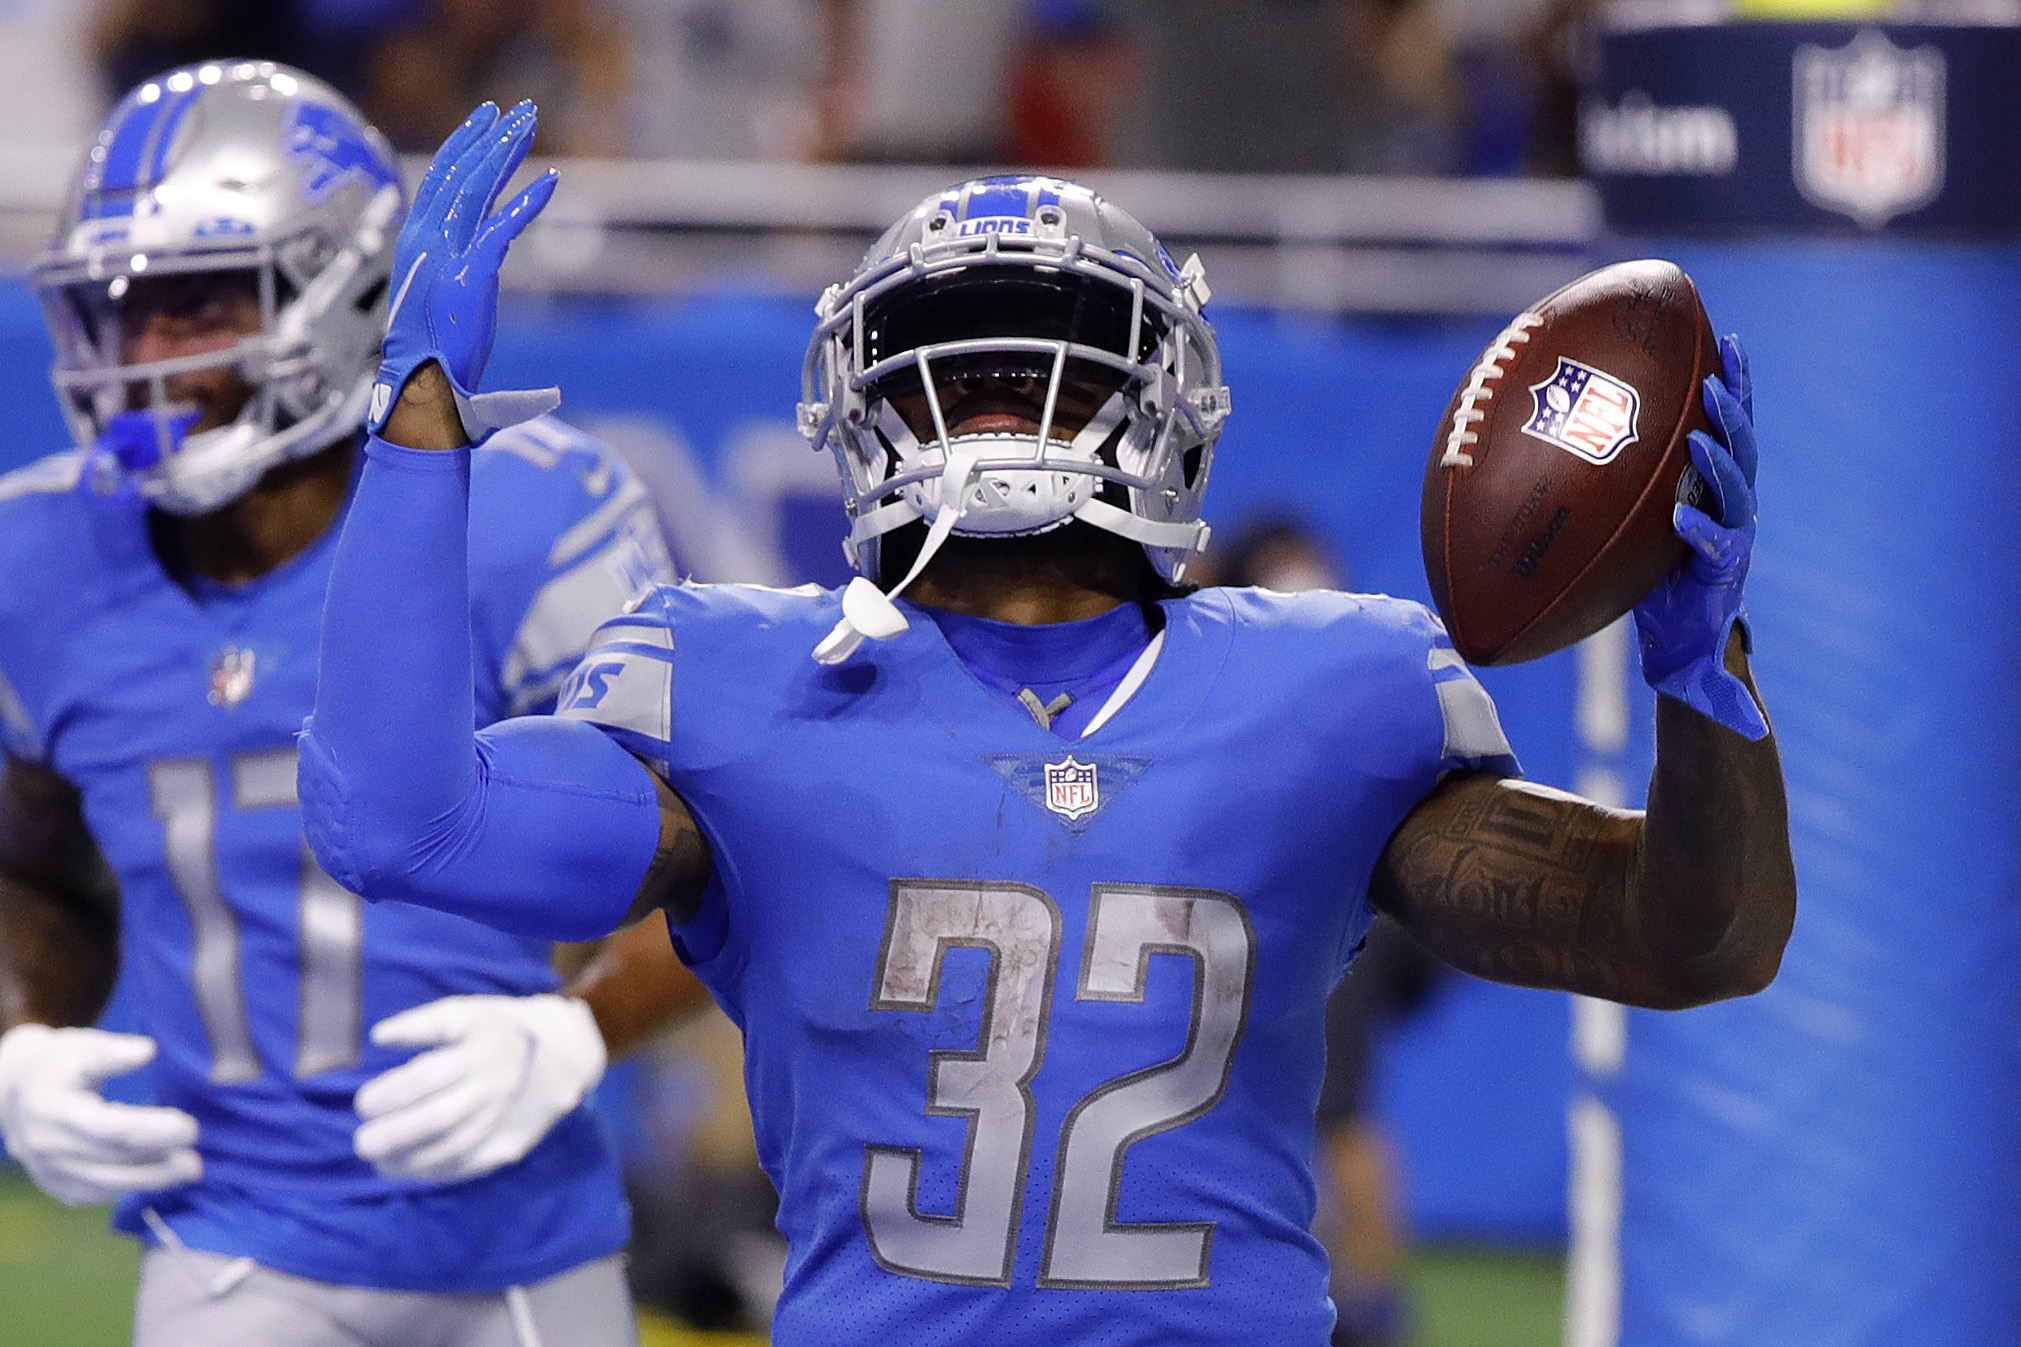 D'Andre Swift #32 of the Detroit Lions celebrates his touchdown against the San Francisco 49ers during the third quarter at Ford Field on September 12, 2021 in Detroit, Michigan.